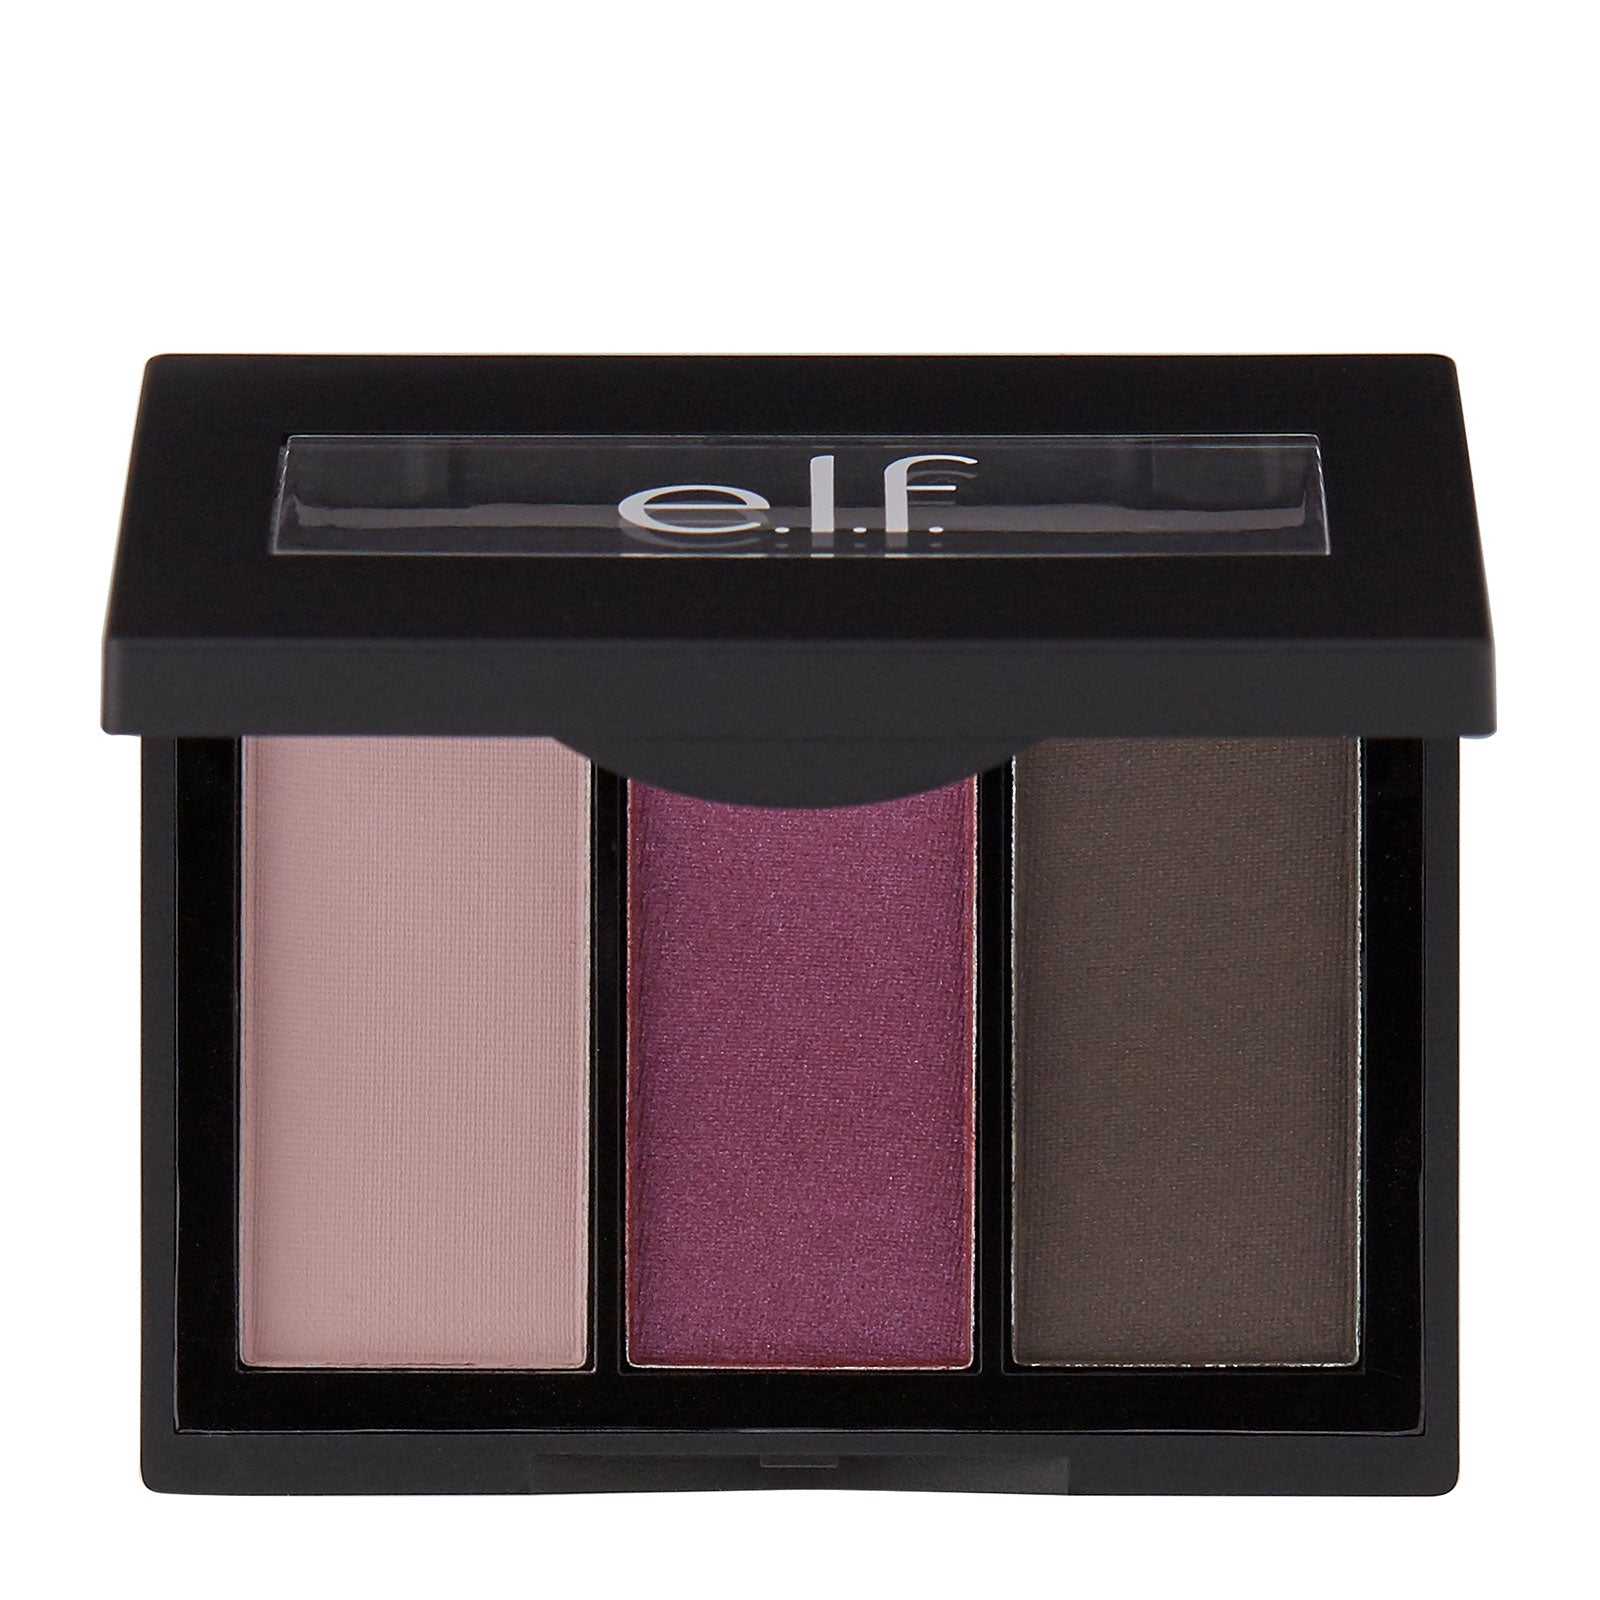 e.l.f. Sculpting Silk Eyeshadow 4.8g